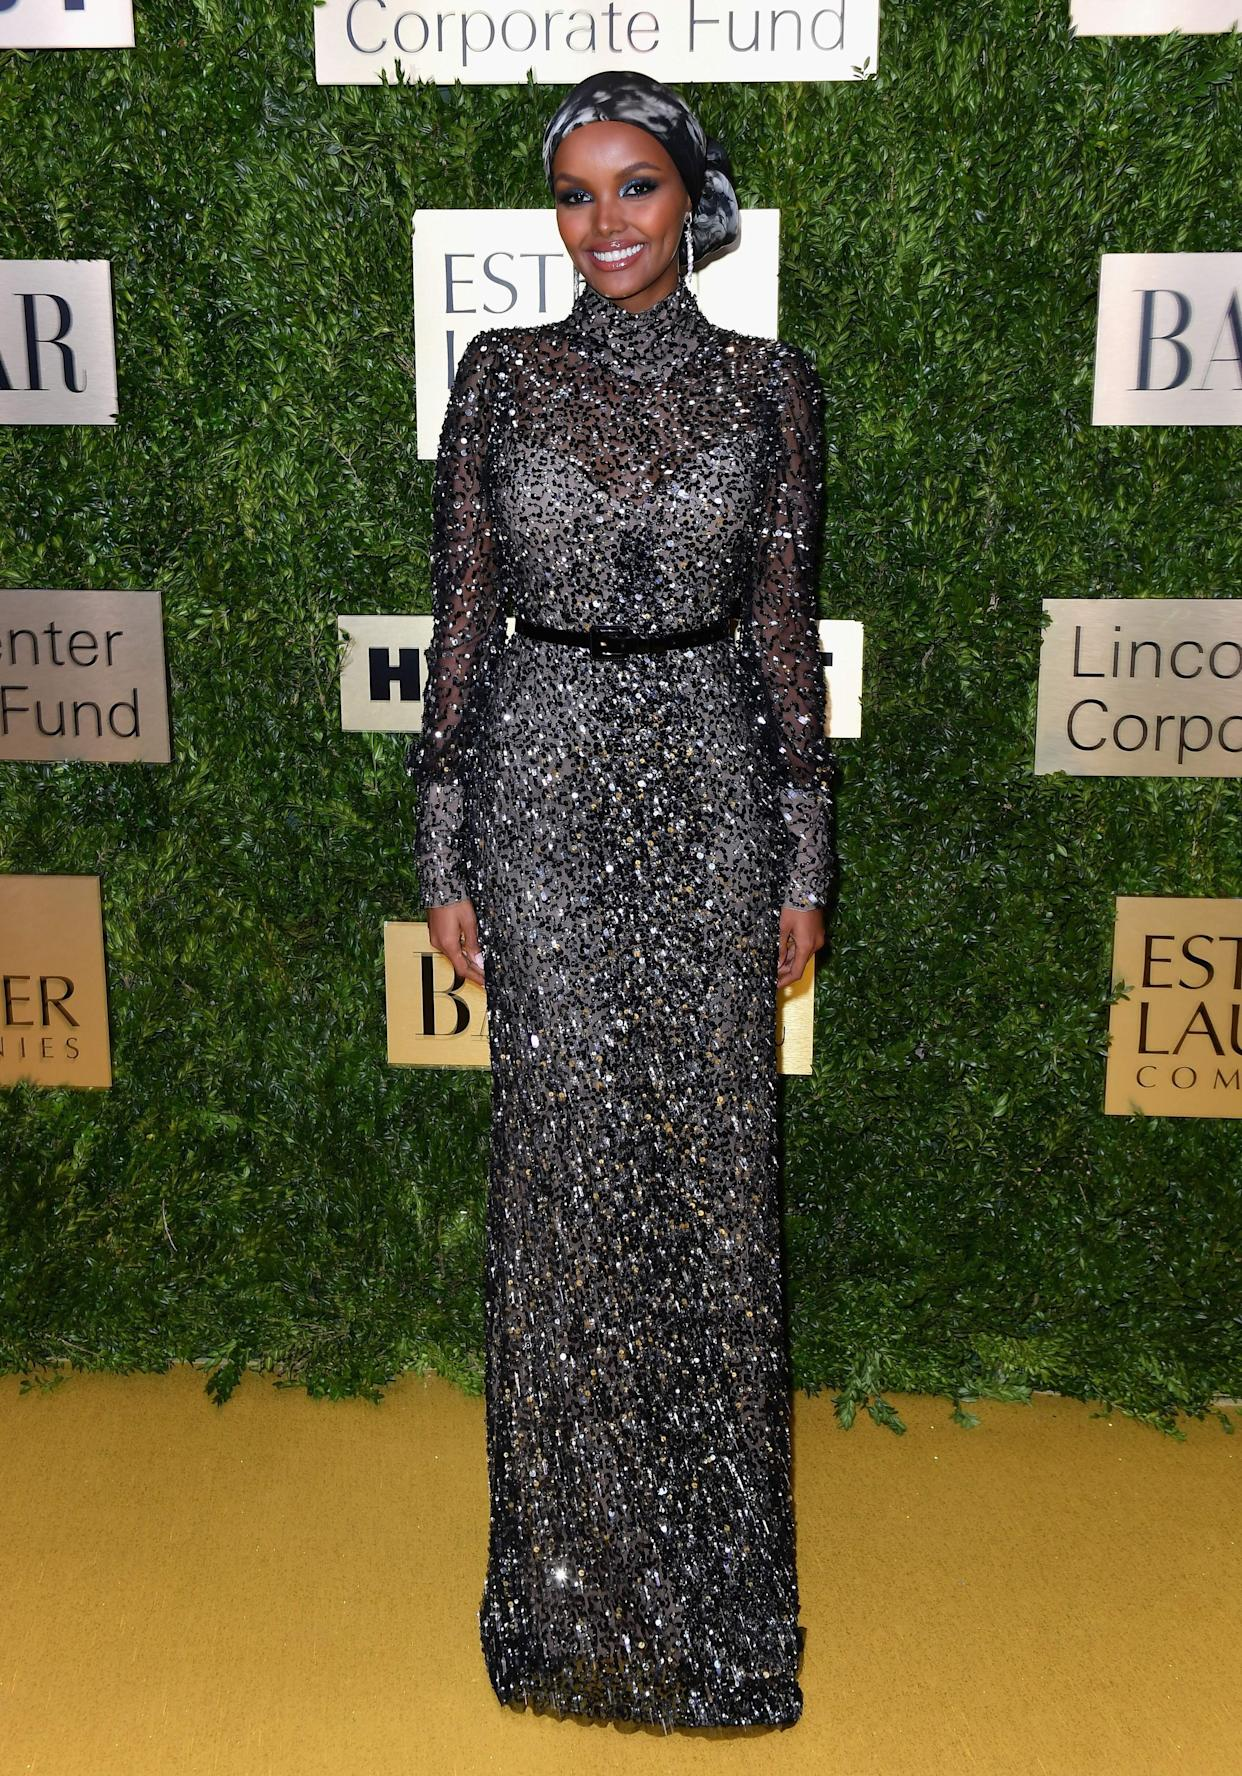 Halima Aden at the Lincoln Center corporate fund fashion gala in New York on Nov. 18.